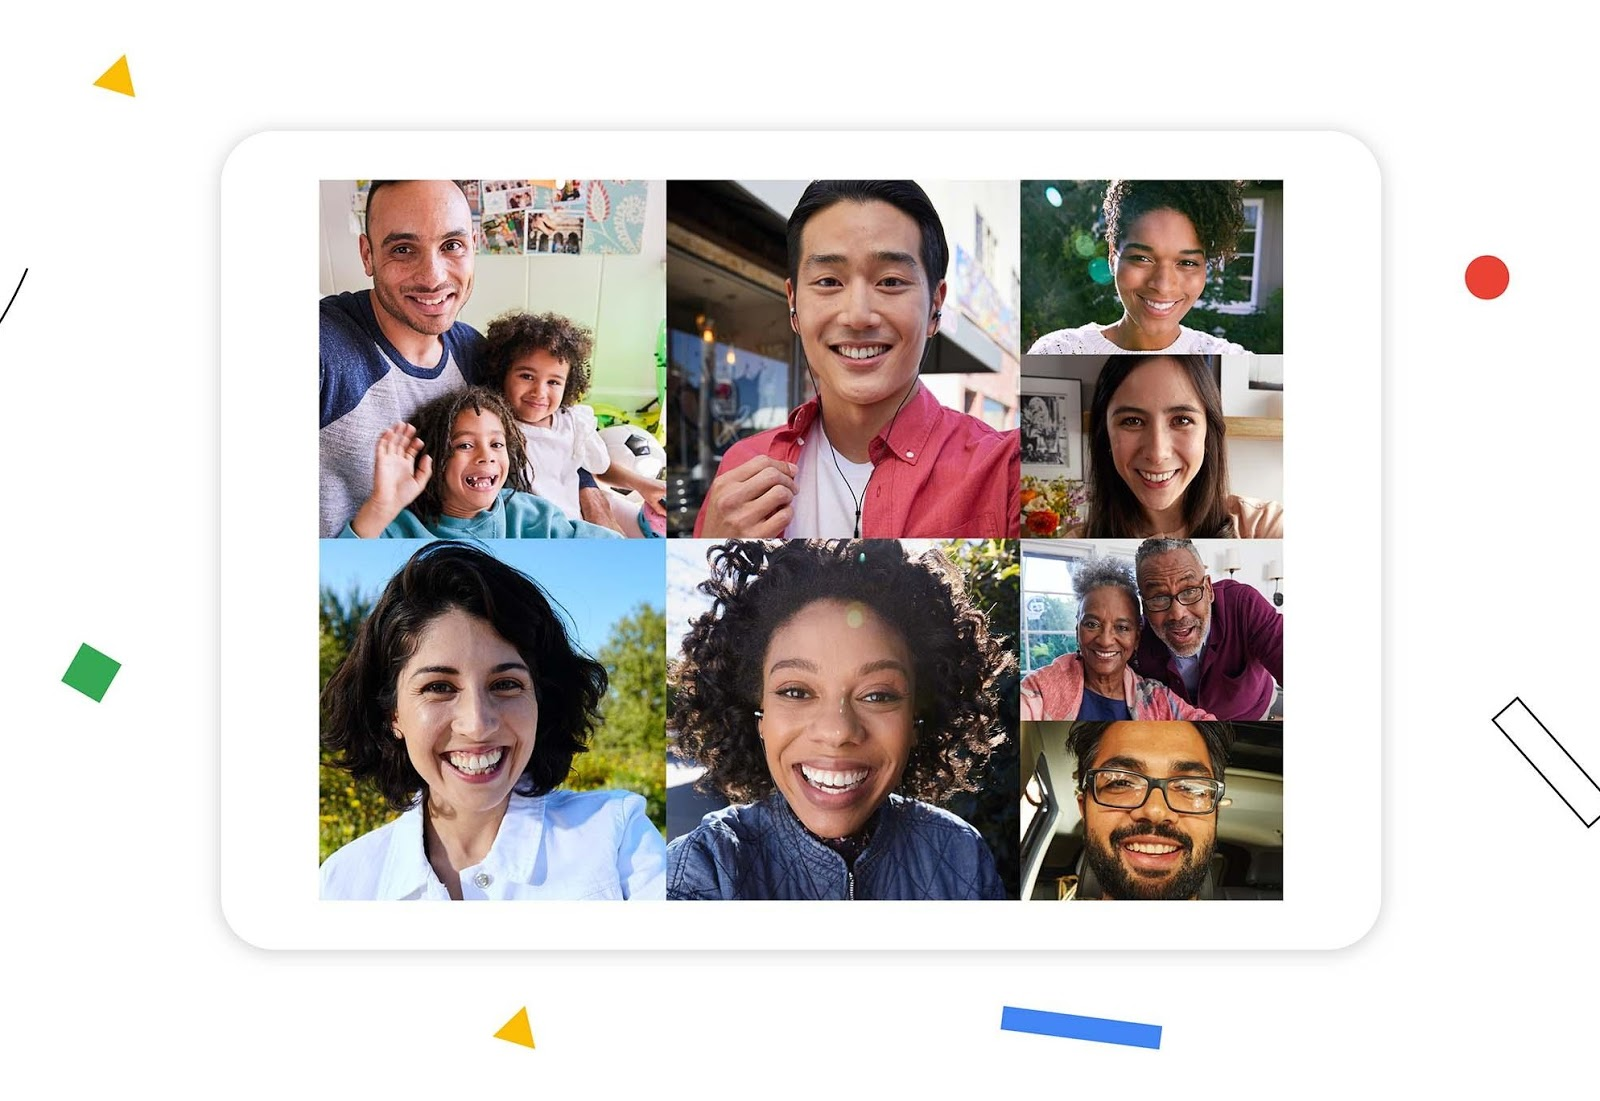 Google Duo to Massively Increase Maximum Participants in Video Calls to Compete With Zoom